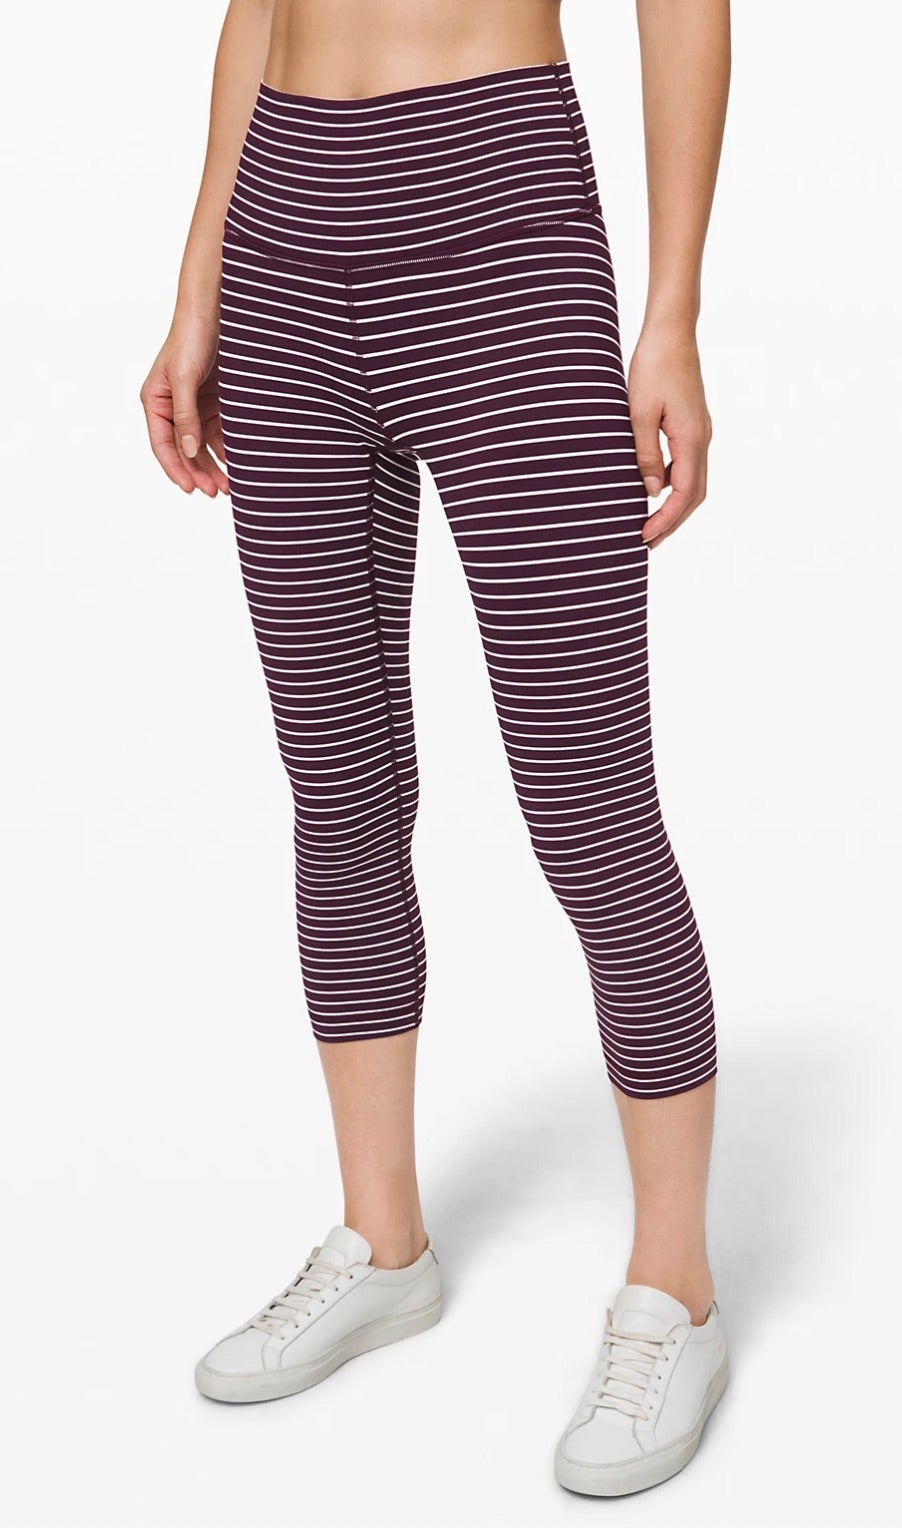 Lululemon Wunder Under Crop (High-Rise) Luxtreme 21""